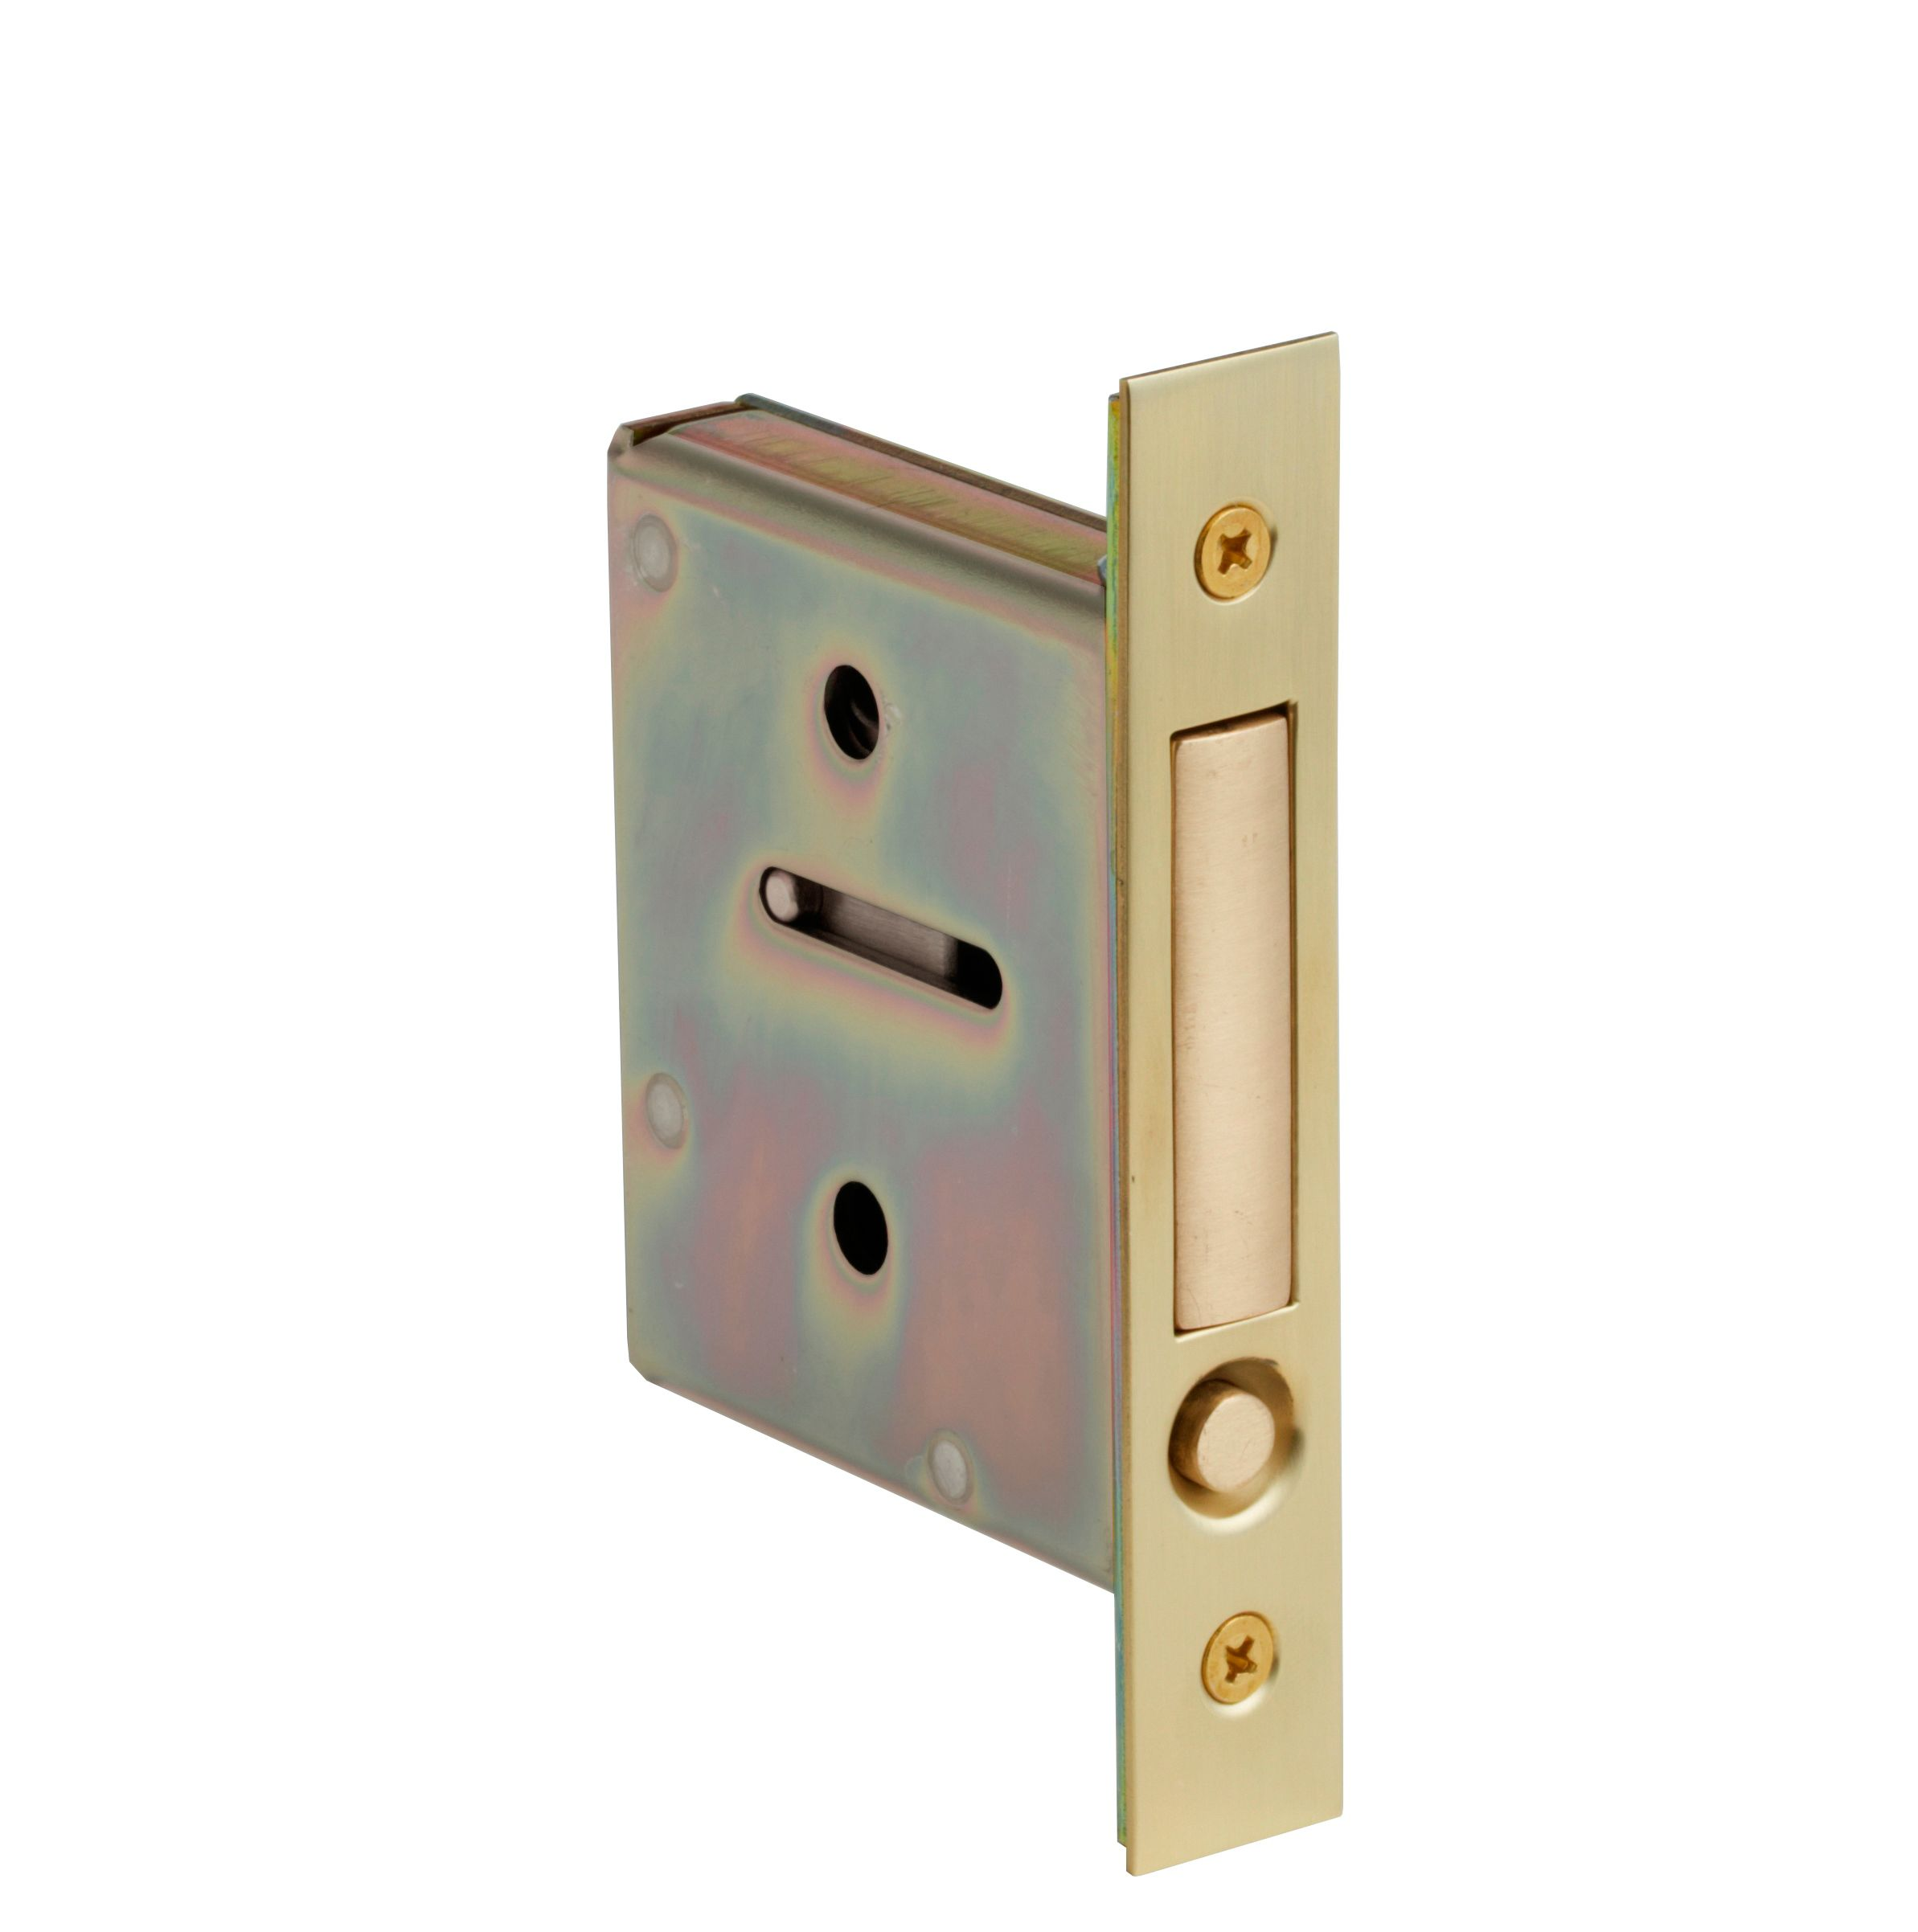 Pocket Door Lock Image Of Popular Pocket Door Locks Bathroom Hook Lock Set With Turn And